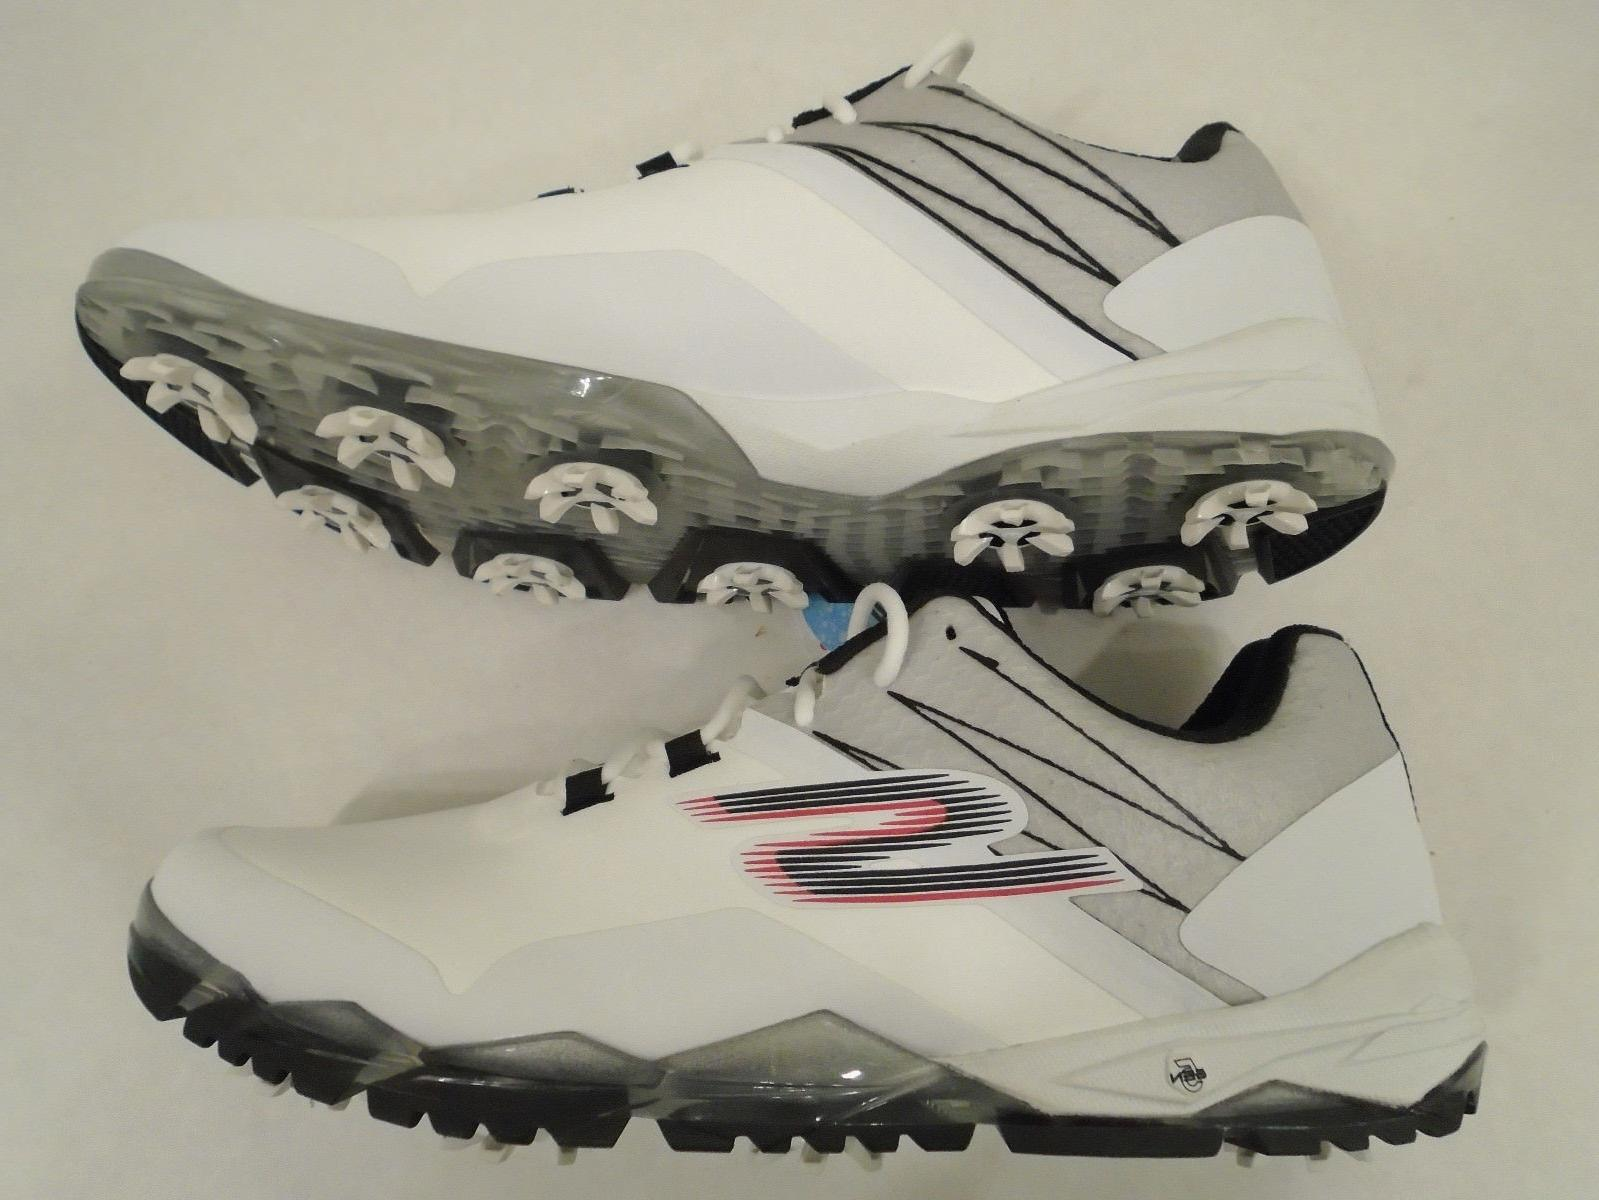 NEW Skechers Mens 8 Go Golf Focus Waterproof Golf Shoes Whit